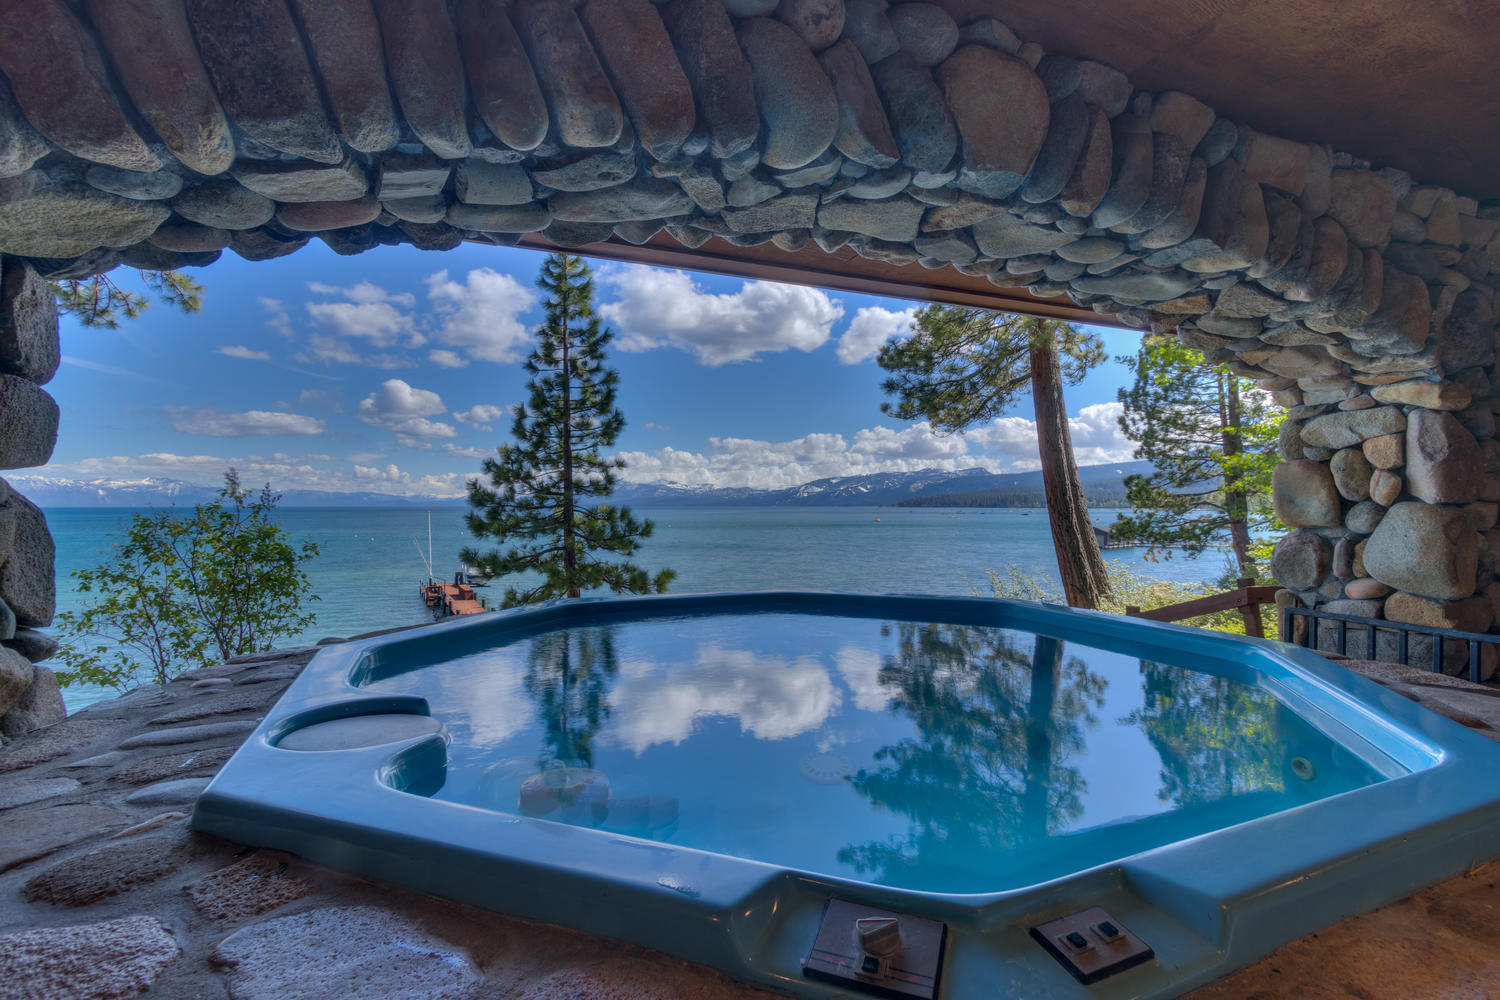 Hot tub on Lake Tahoe